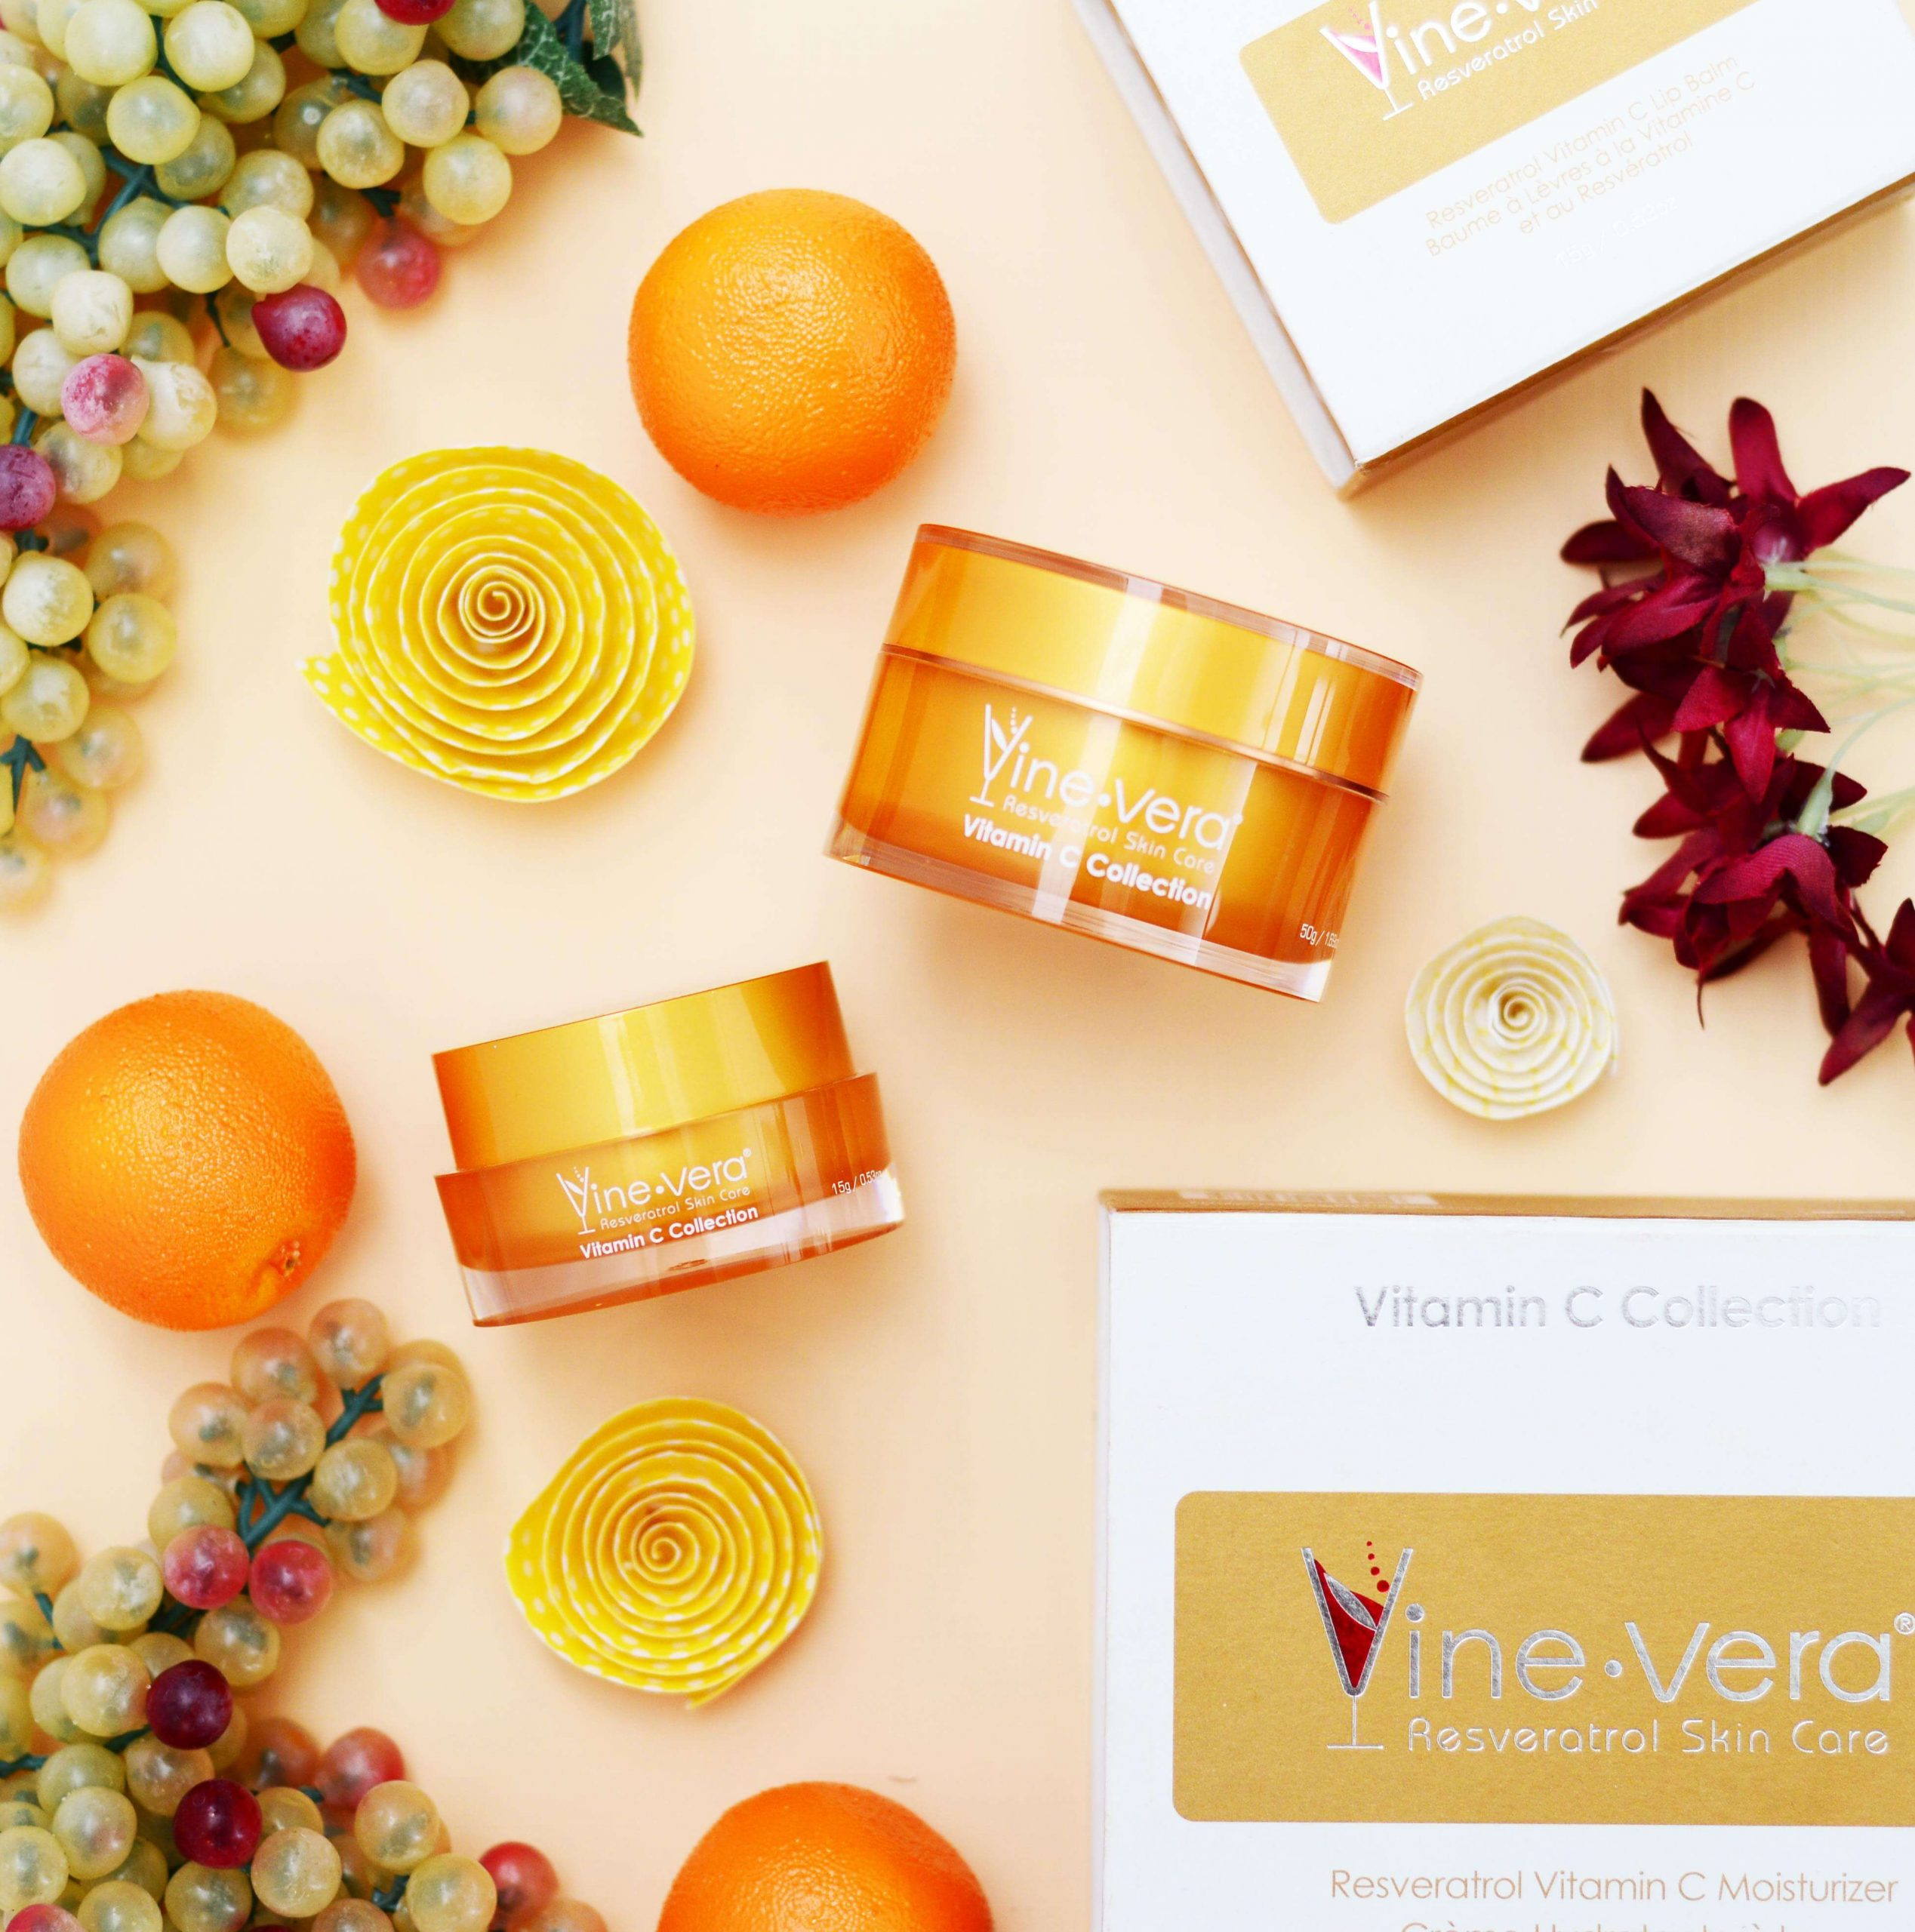 Resveratrol and Vitamin C products